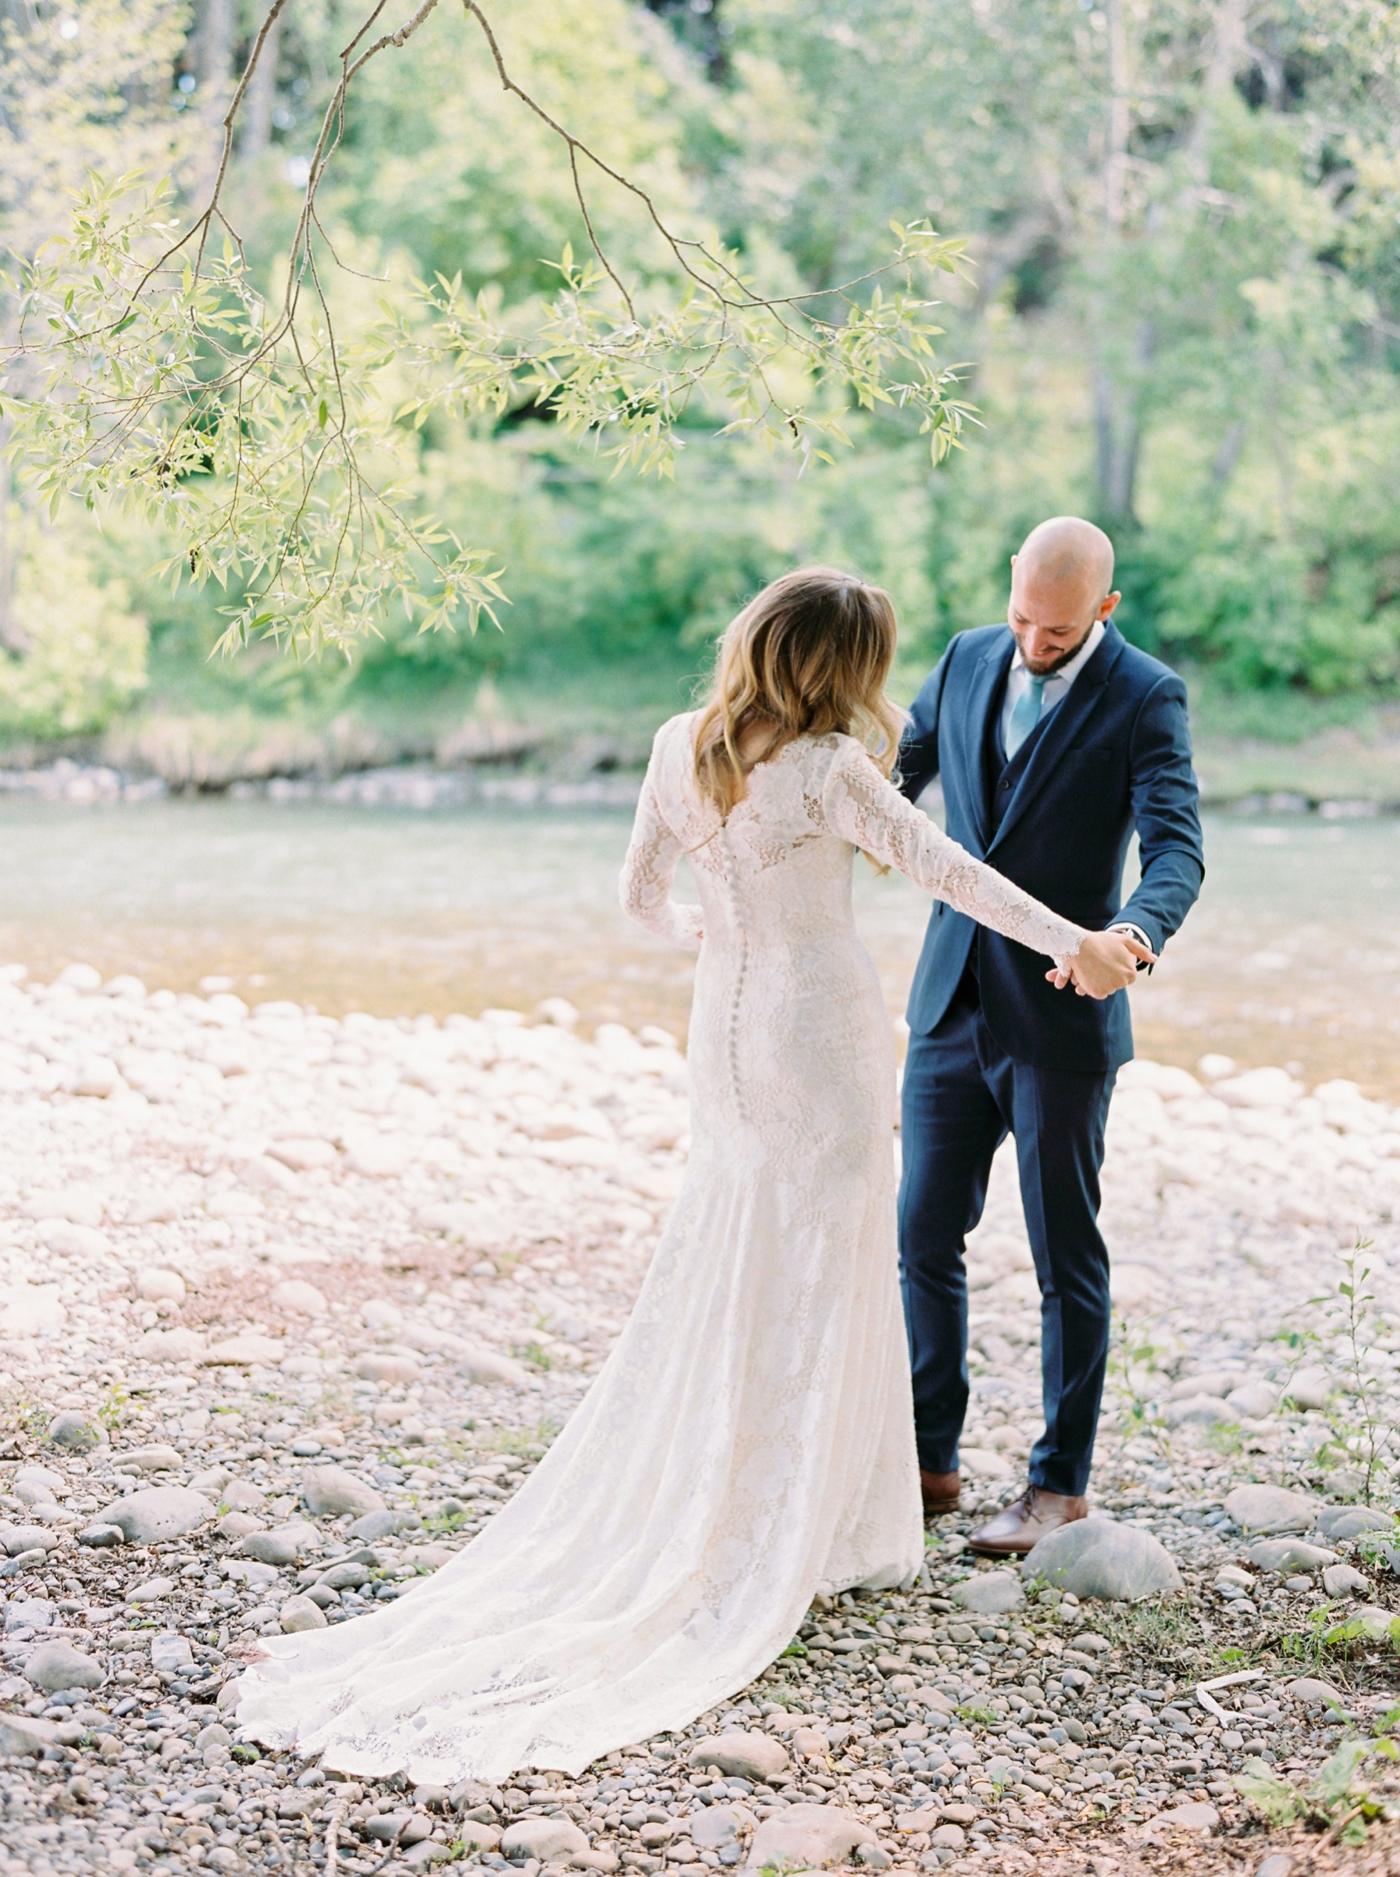 Calgary wedding photographers | The Gathered Farm Wedding | Justine milton fine art film photographer | Frist Look